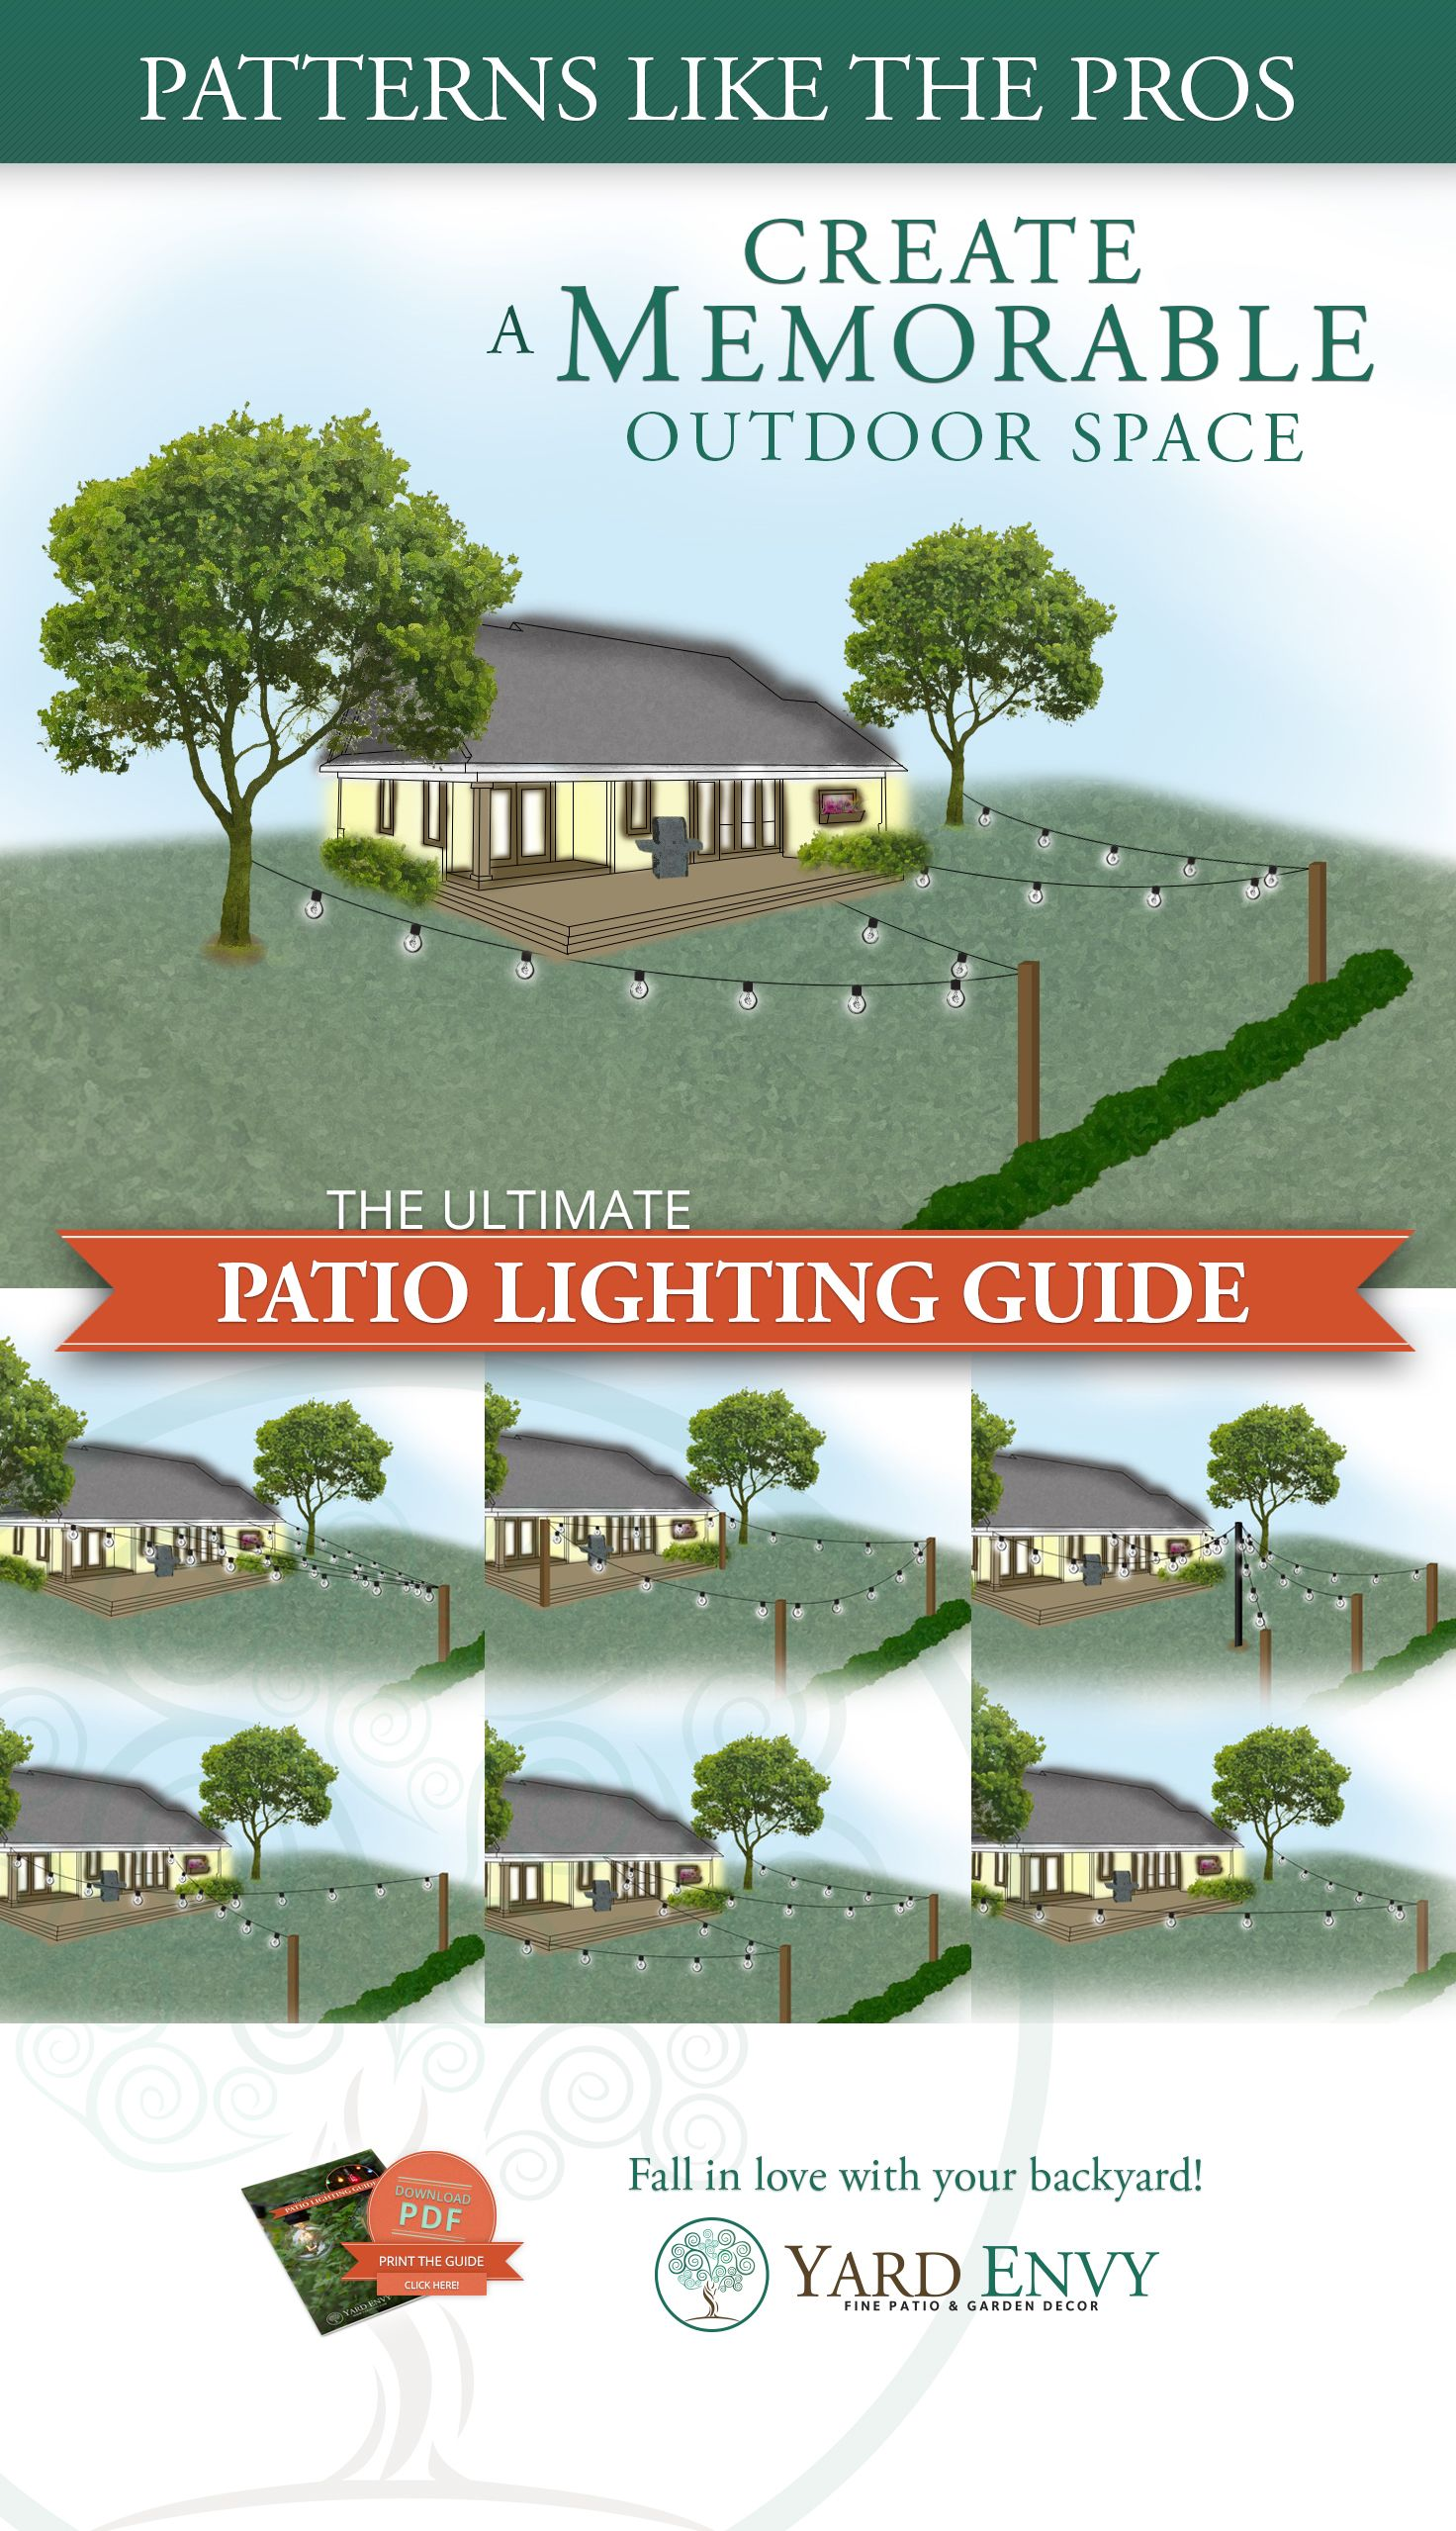 f5bb09d1db8e07d1a352bfc942edfd53 the ultimate patio lights guide diy patio, patio lighting and  at bayanpartner.co